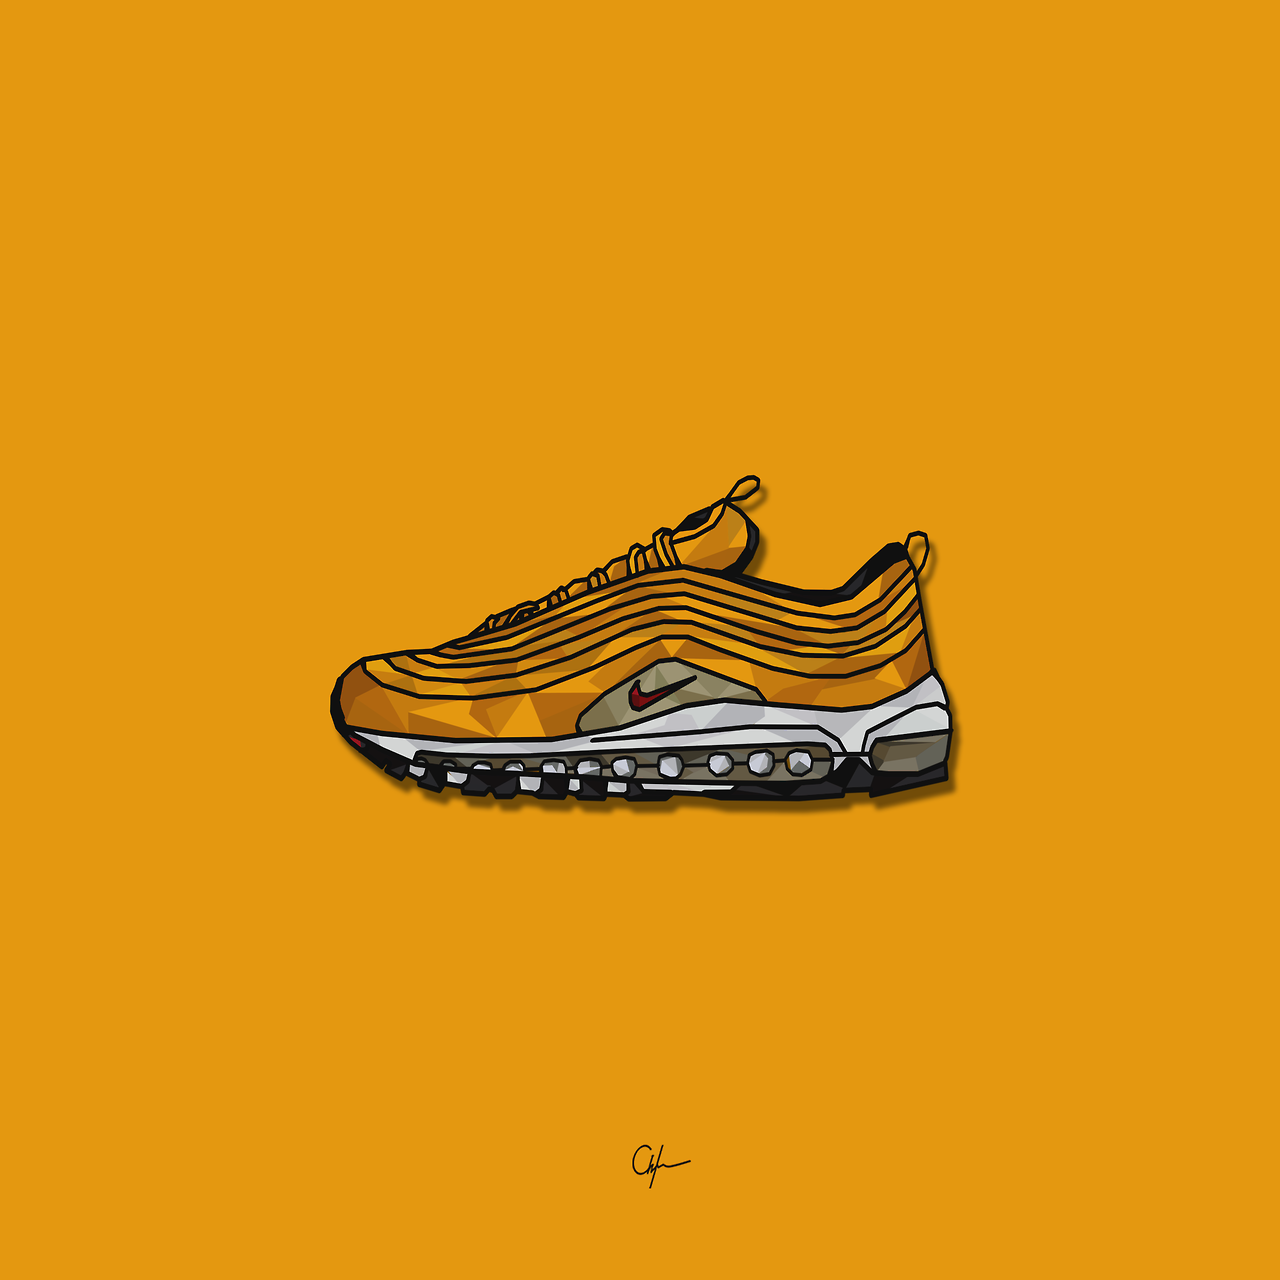 Nike Air Max 97 Gold Art x Younmarx | #art #nike #nike97